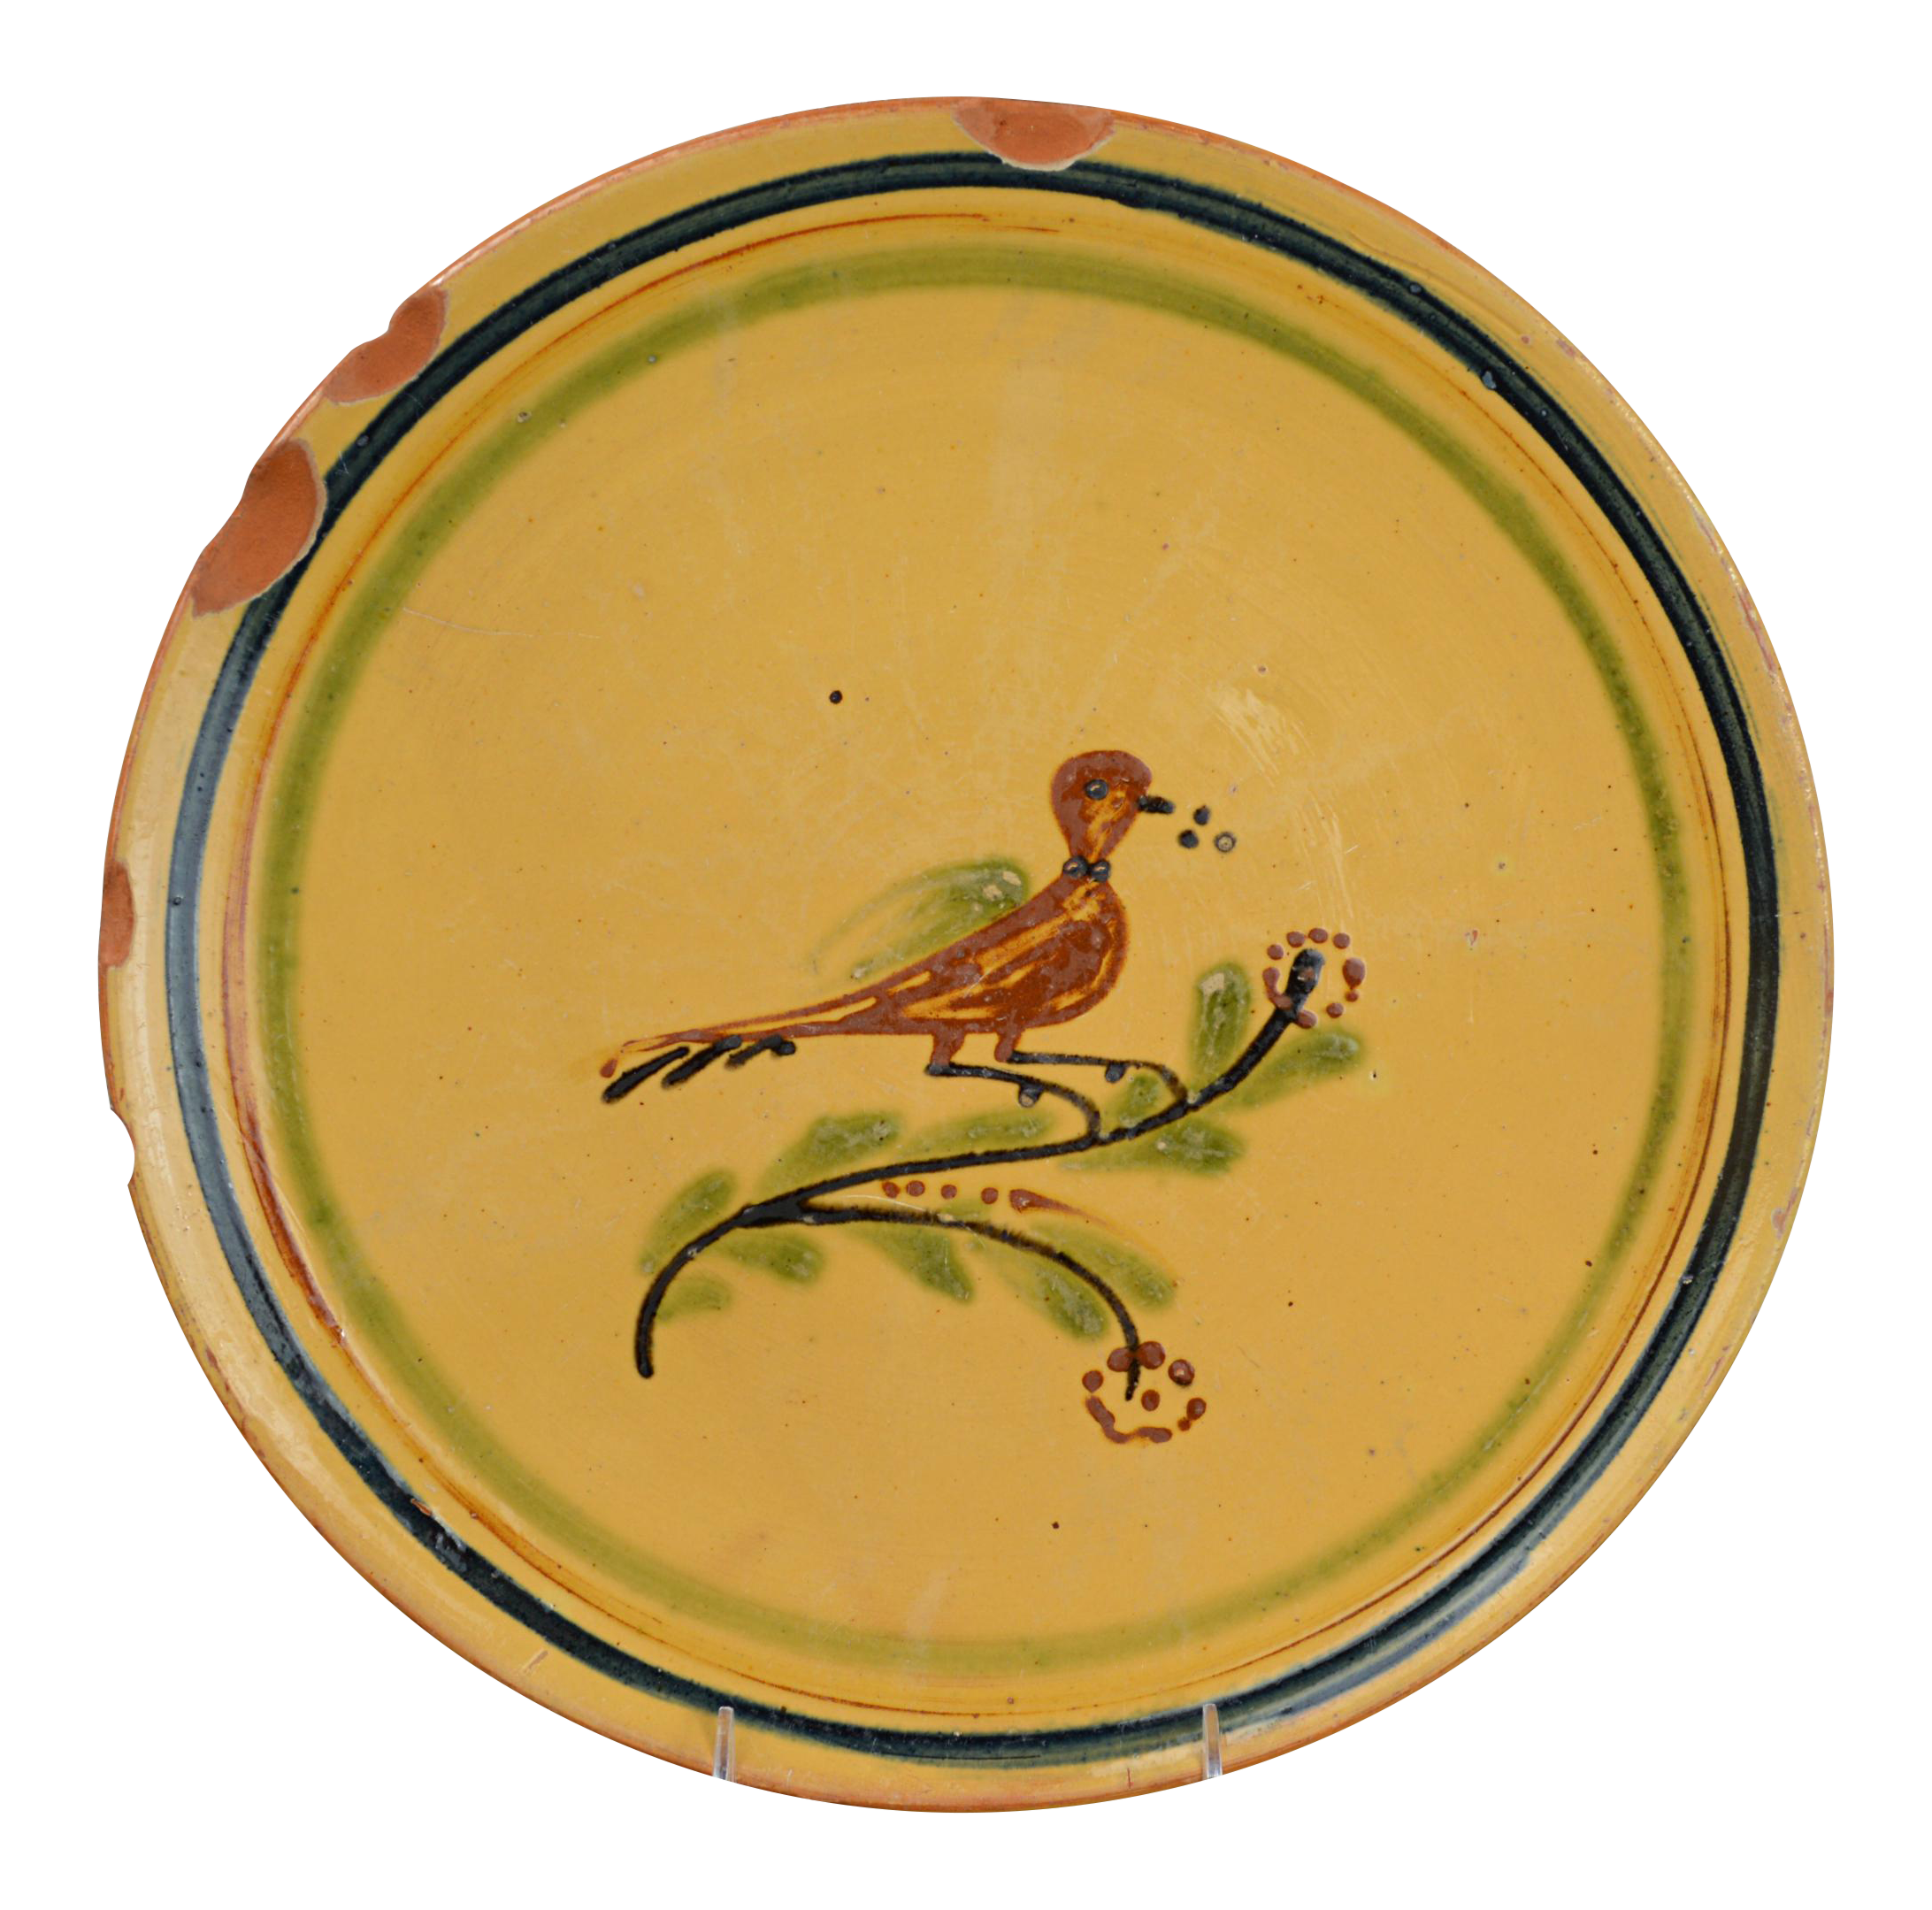 Hertz Pottery French Terracotta Charger With Bird   Chairish